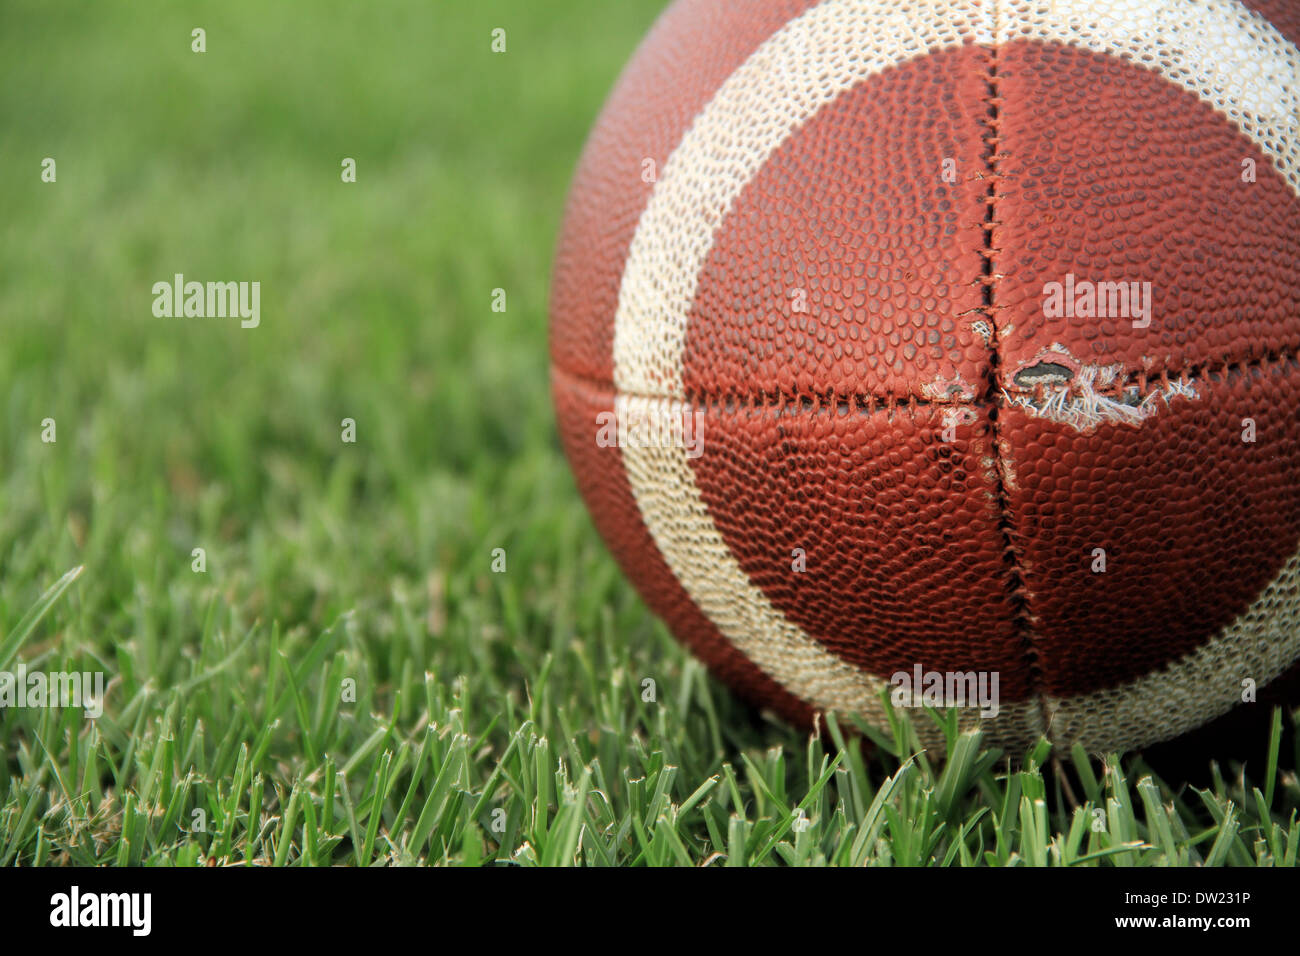 Football americano Immagini Stock